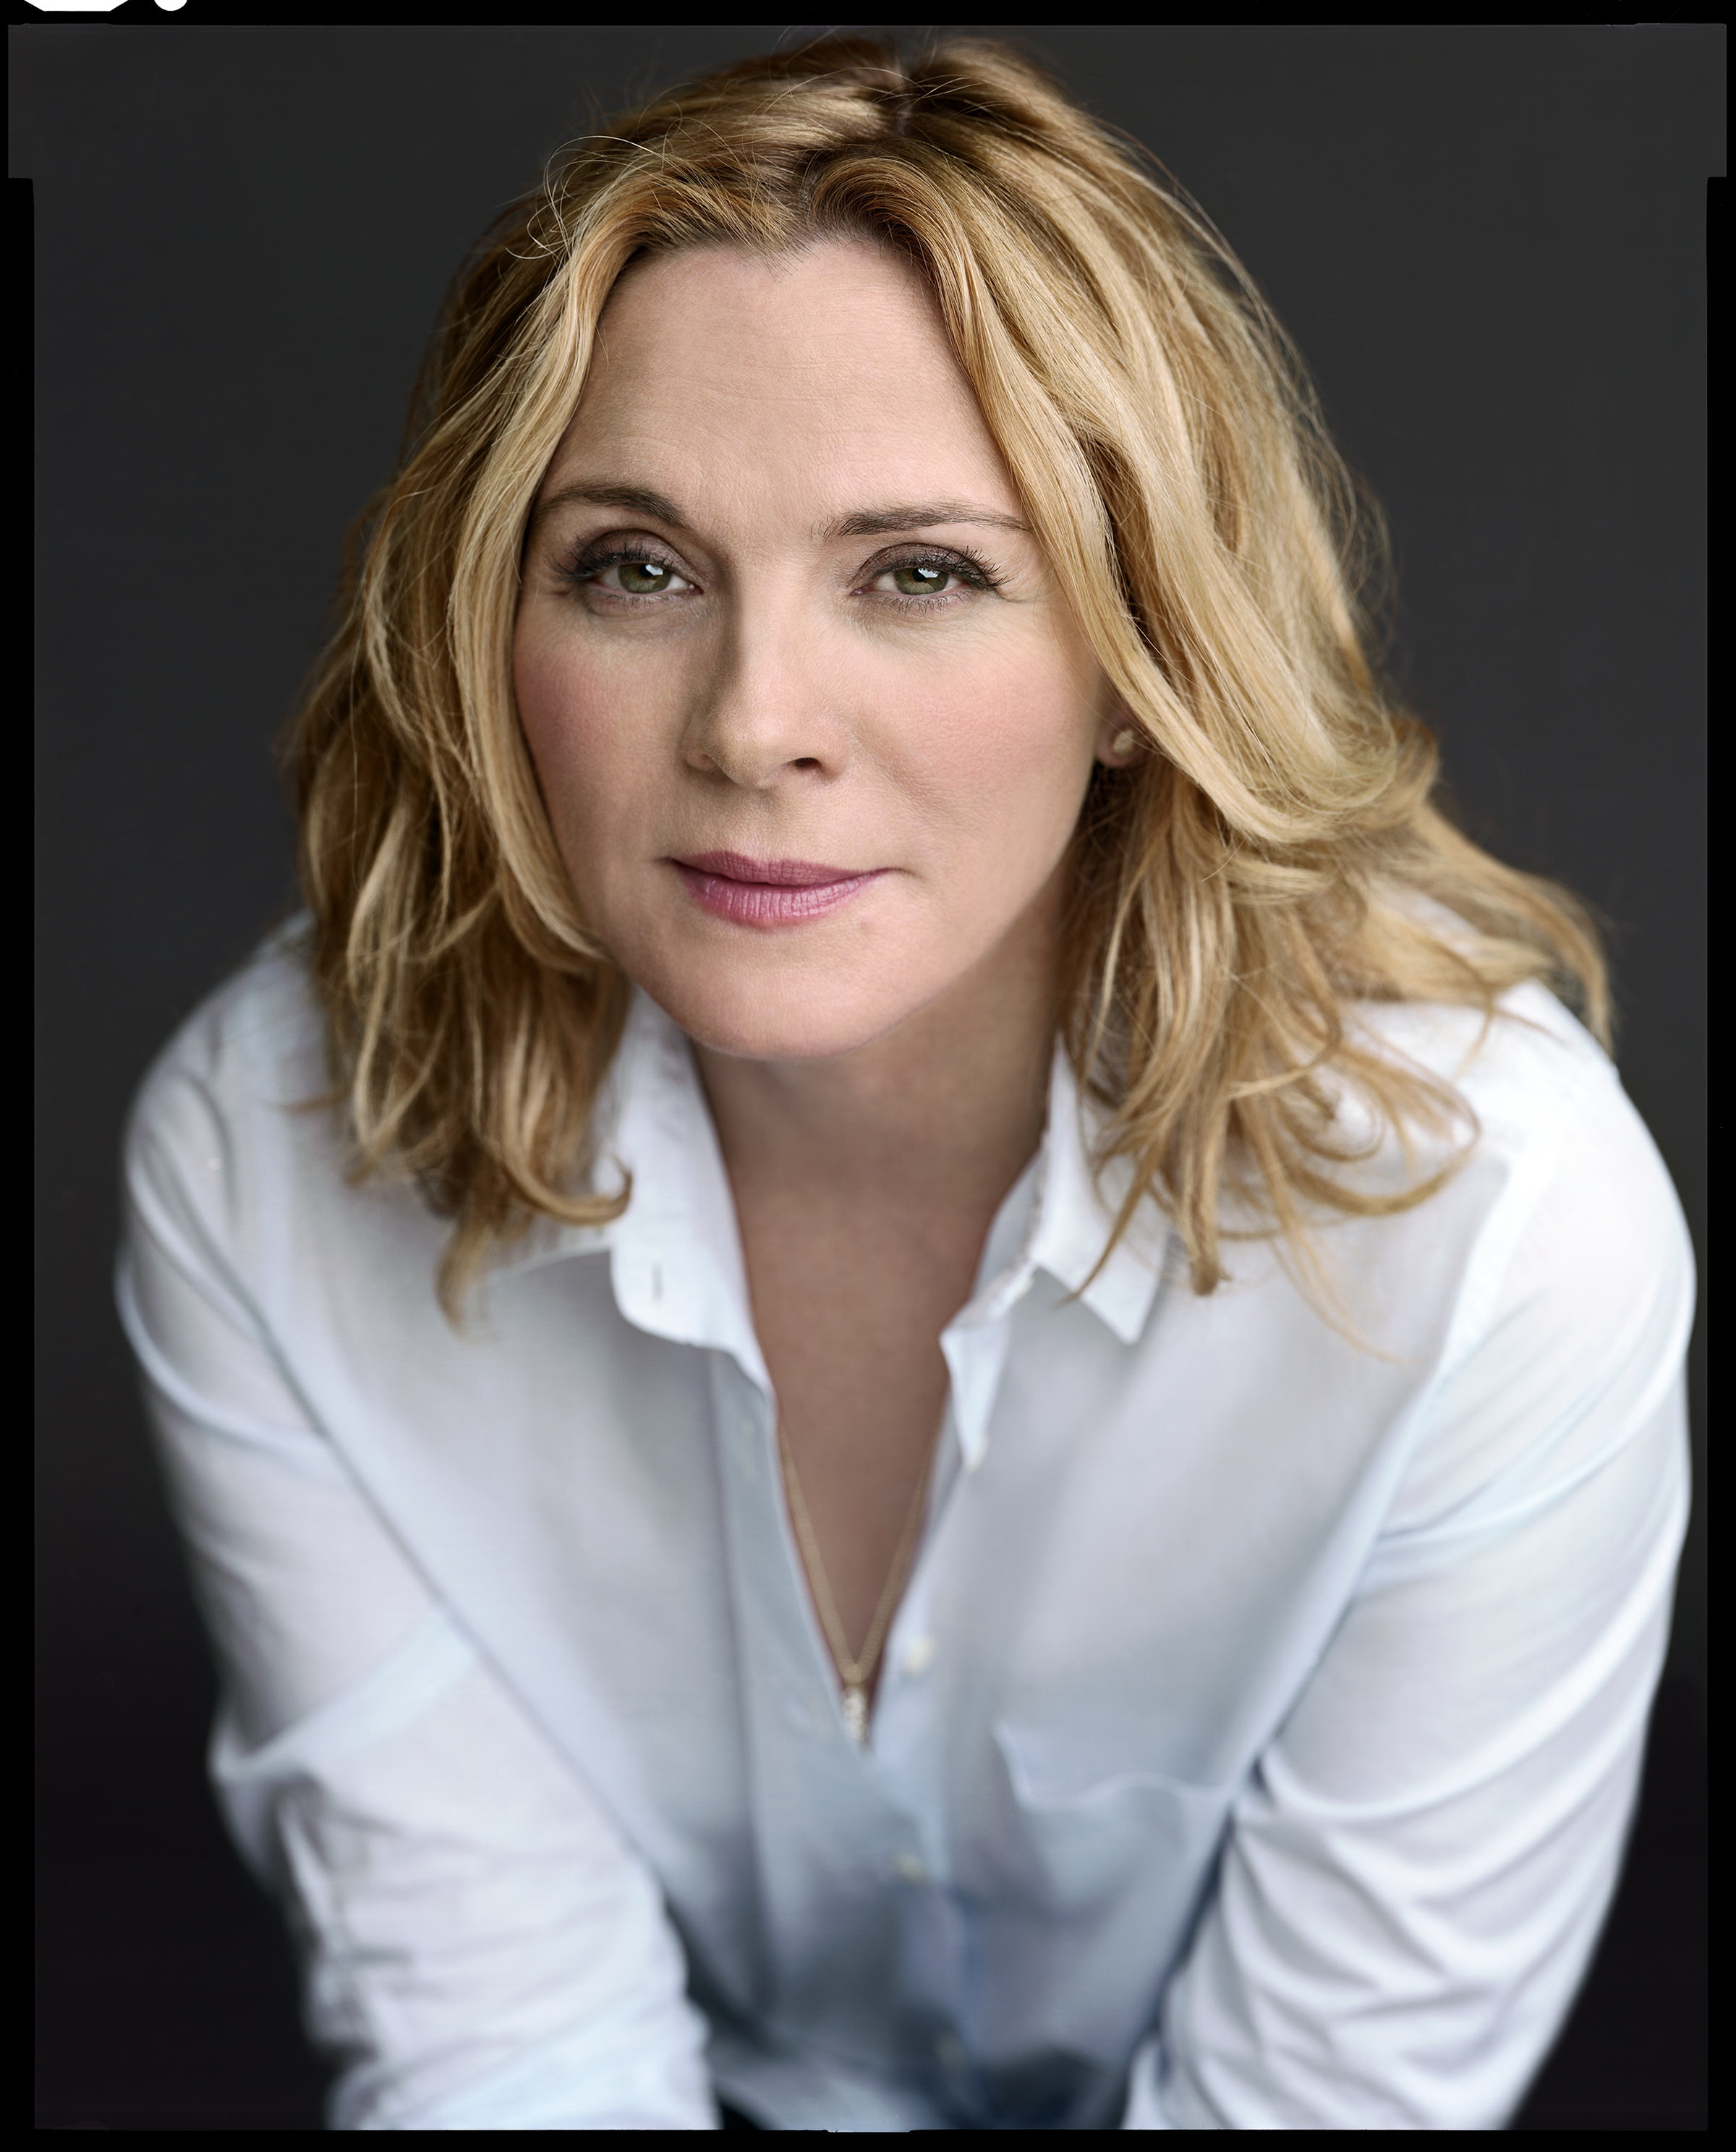 1956: Kim Cattrall, actress